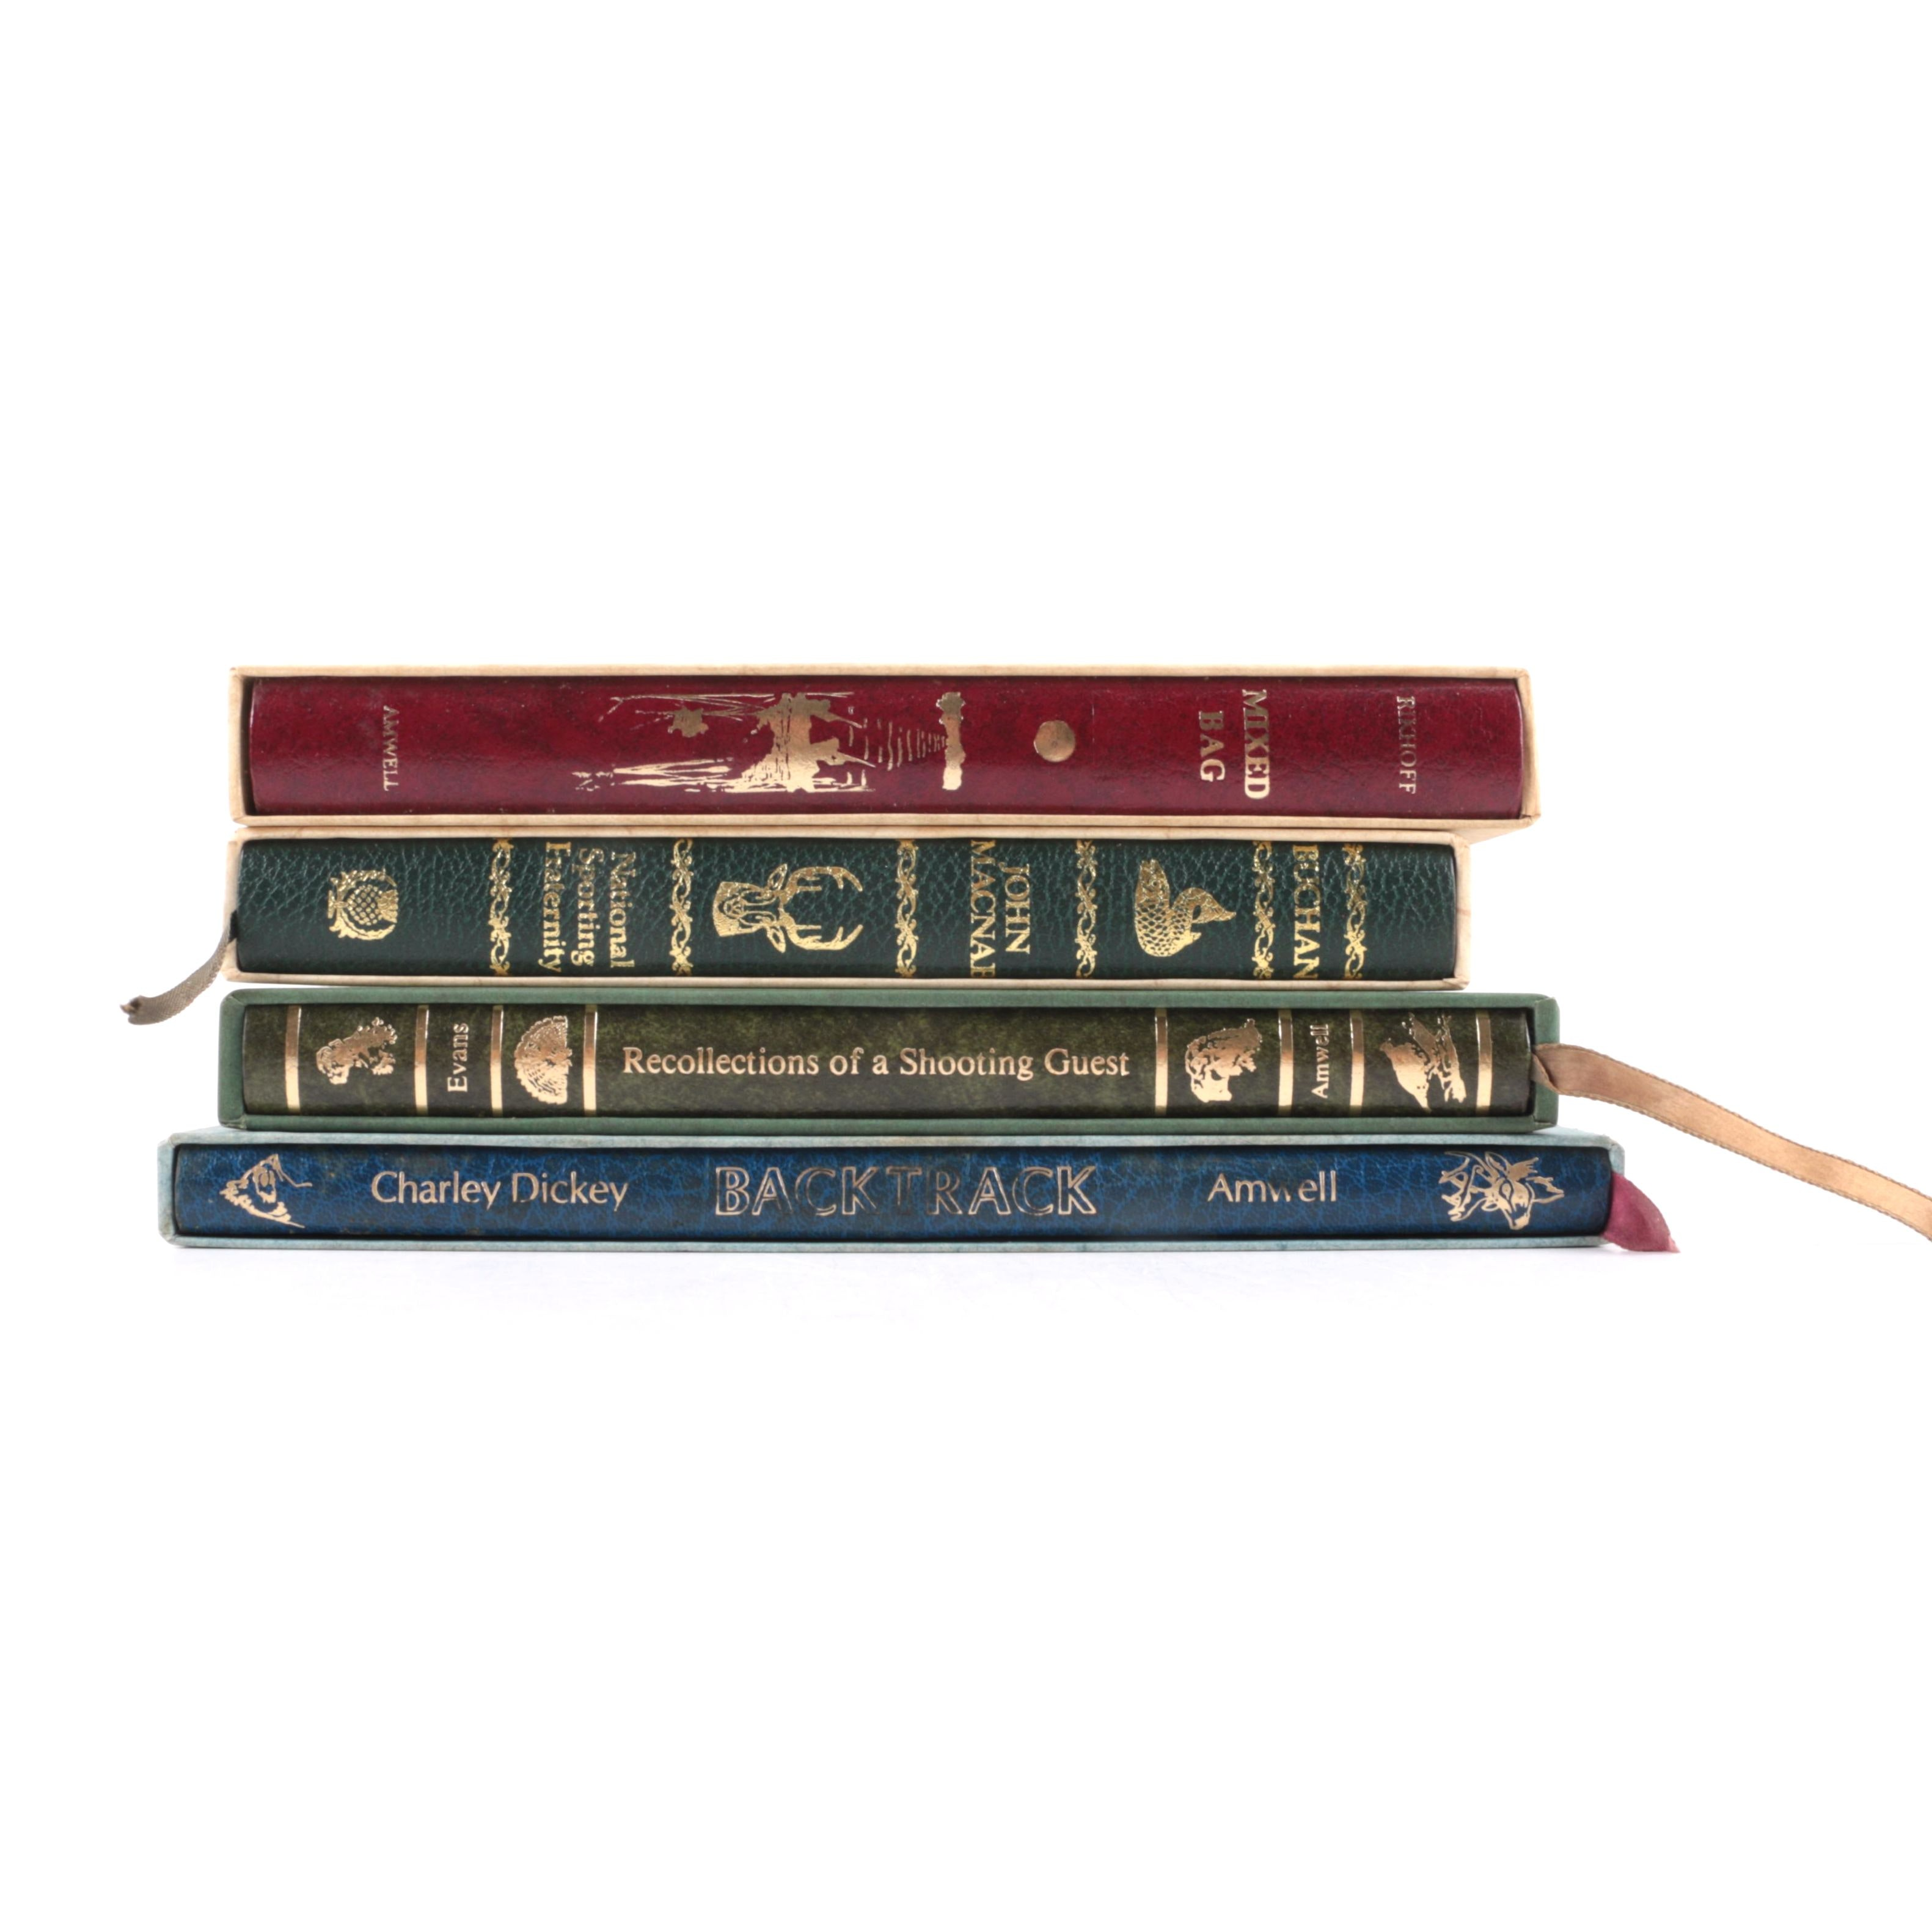 National Sports Fraternity Limited and Amwell Press Leather Bound Books Including Signed Copies